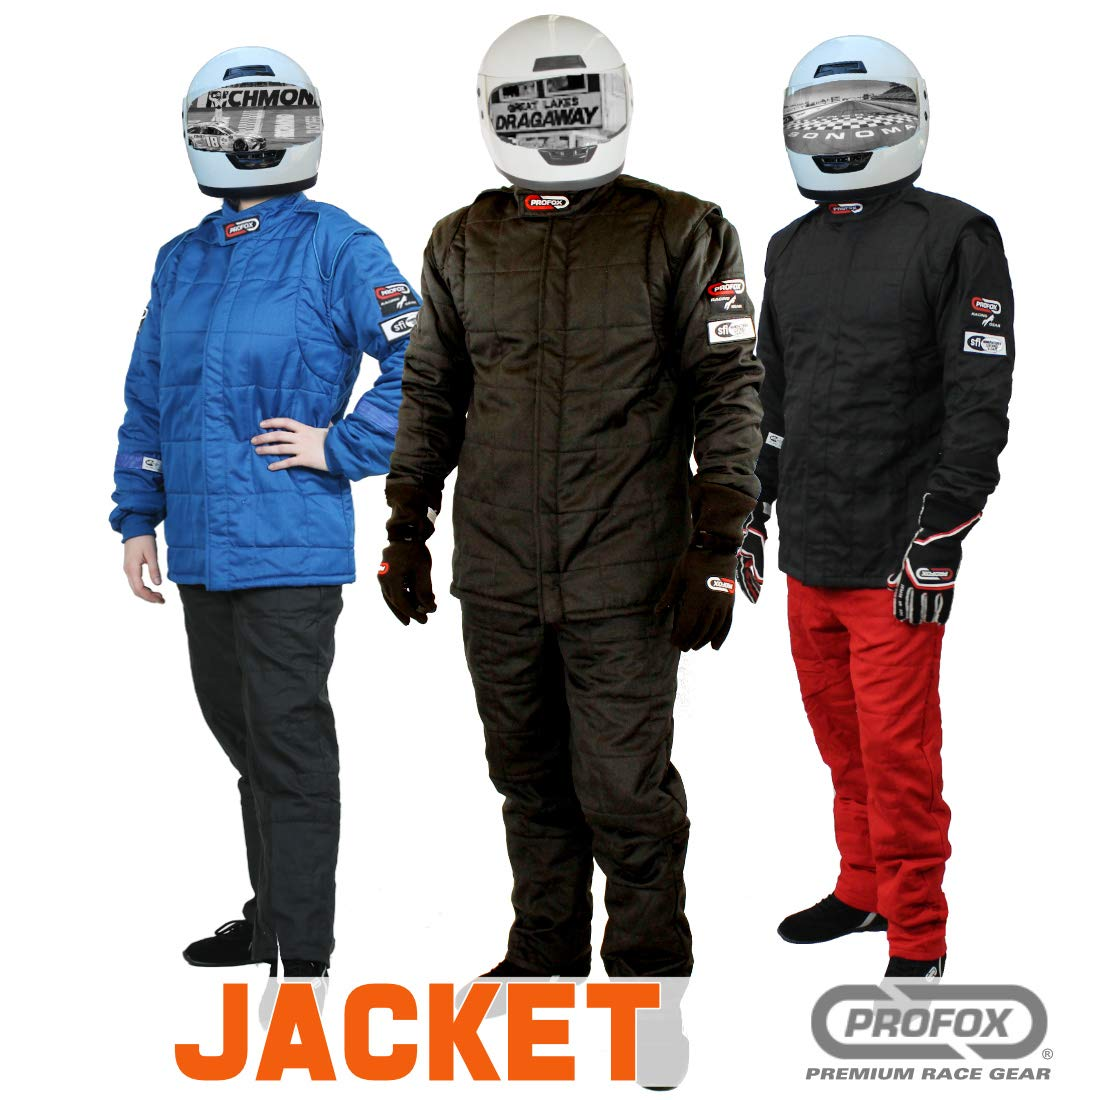 PROFOX-102 Black Medium Jacket Auto Racing Fire Resistant Single Layer SFI 3.2A//1 Racing Fire Suit Jacket only